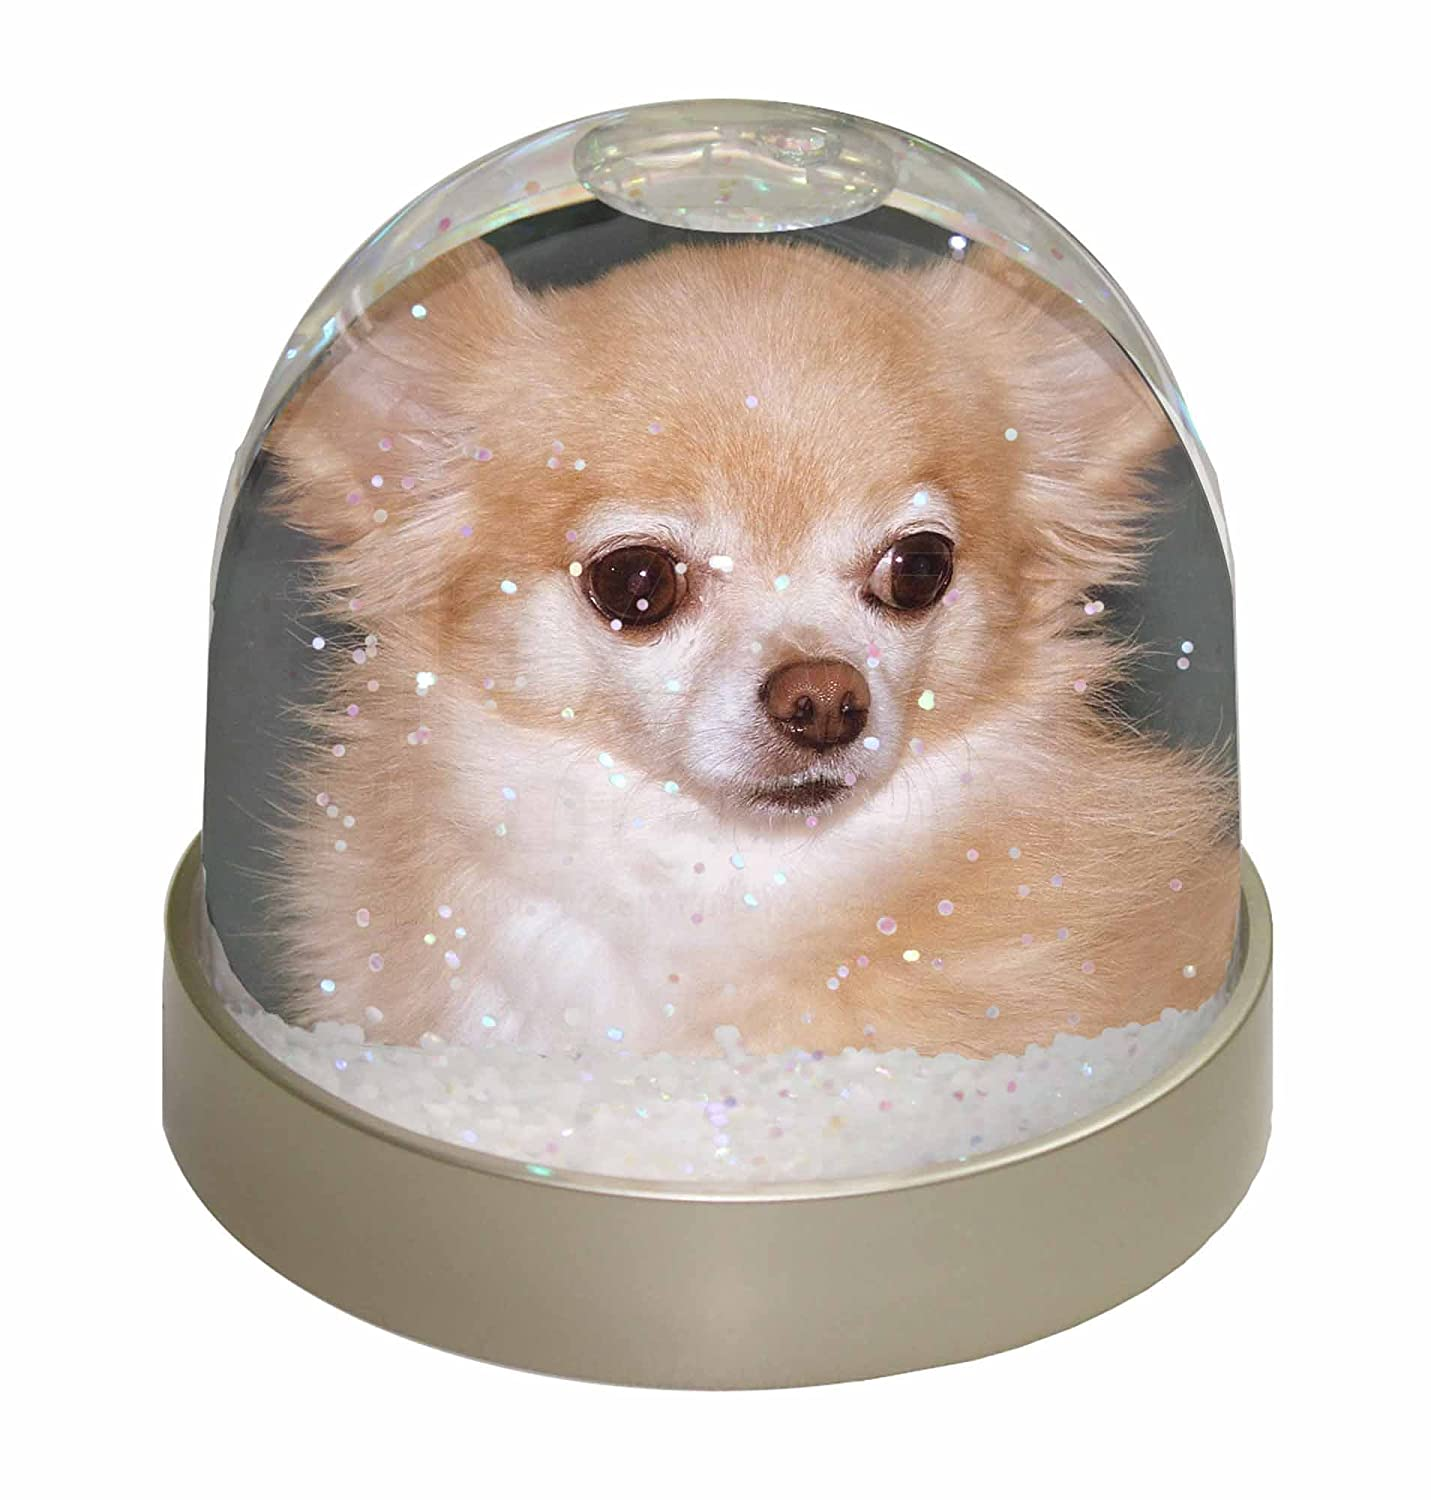 Advanta Chihuahua Dog Snow Dome Globe Waterball Gift, Multi-Colour, 9.2 x 9.2 x 8 cm Advanta Products AD-CH30GL